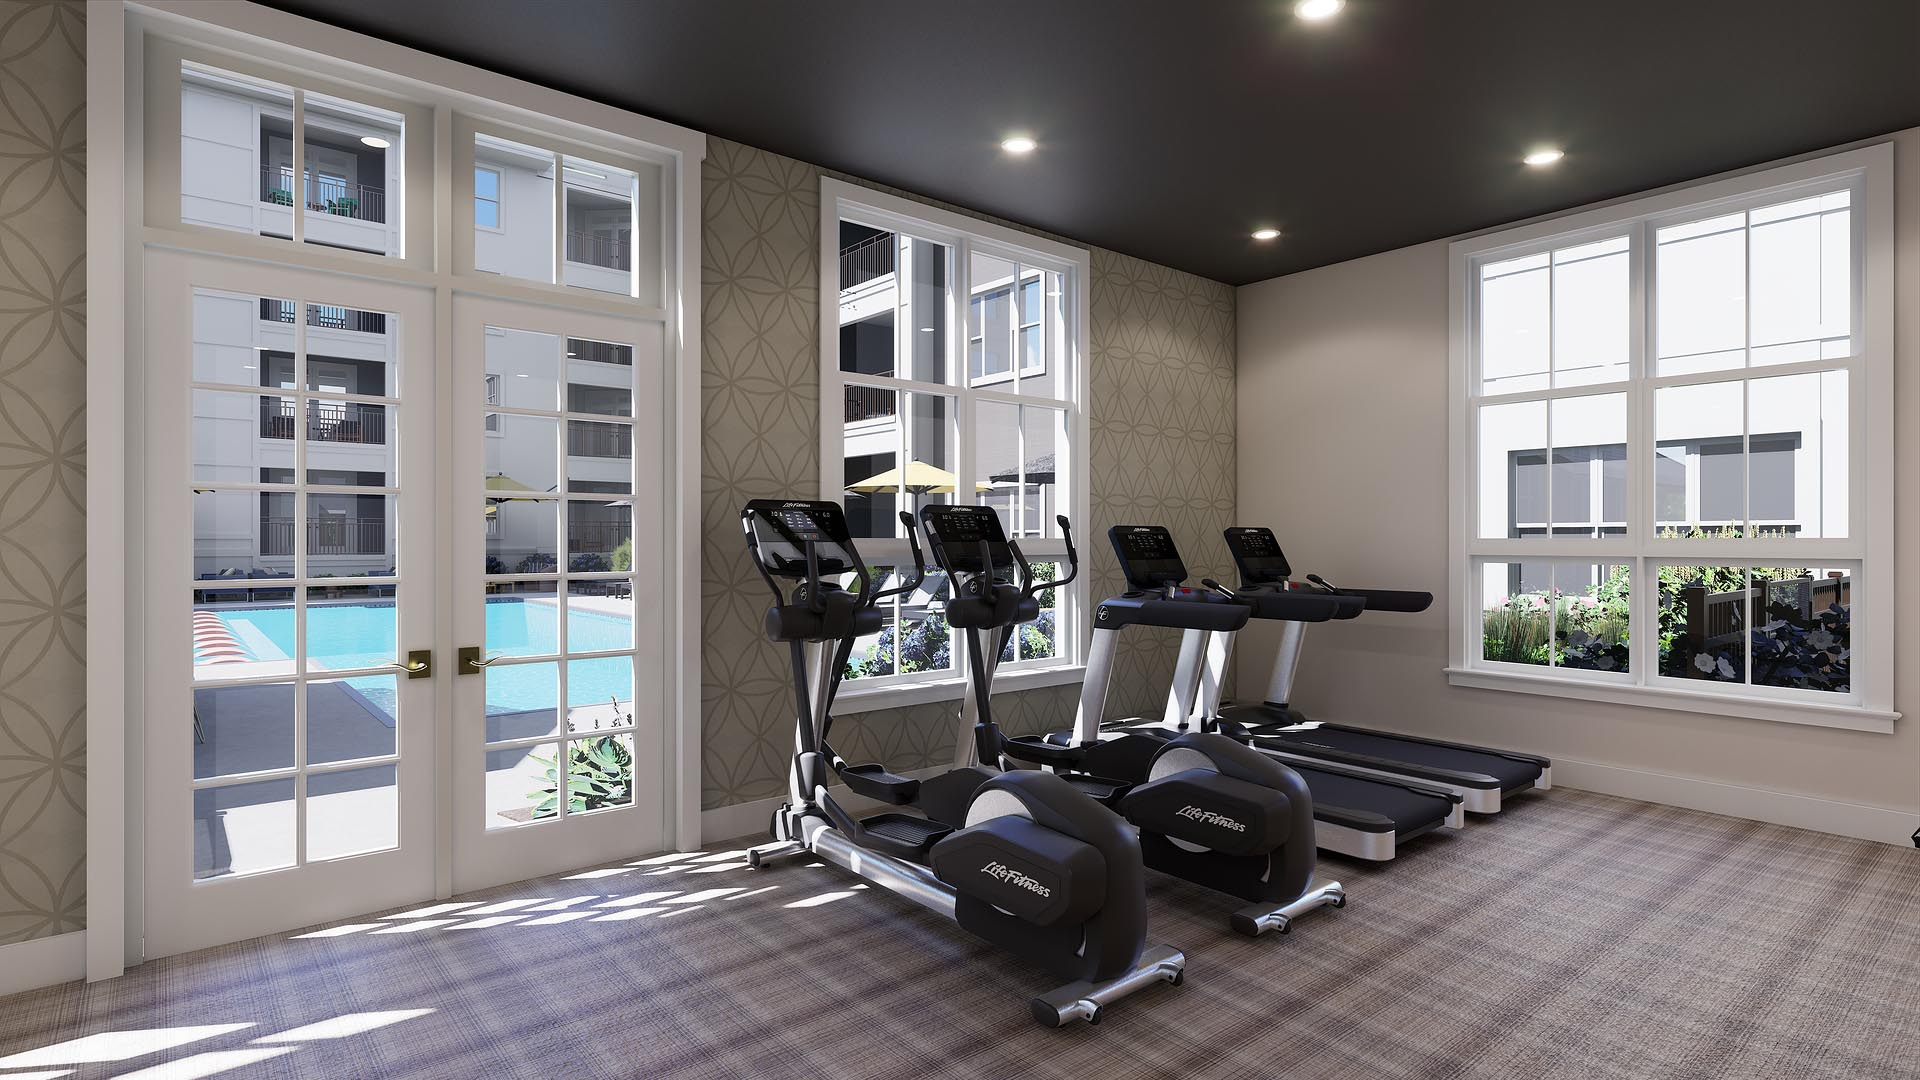 A rendering of a fitness center